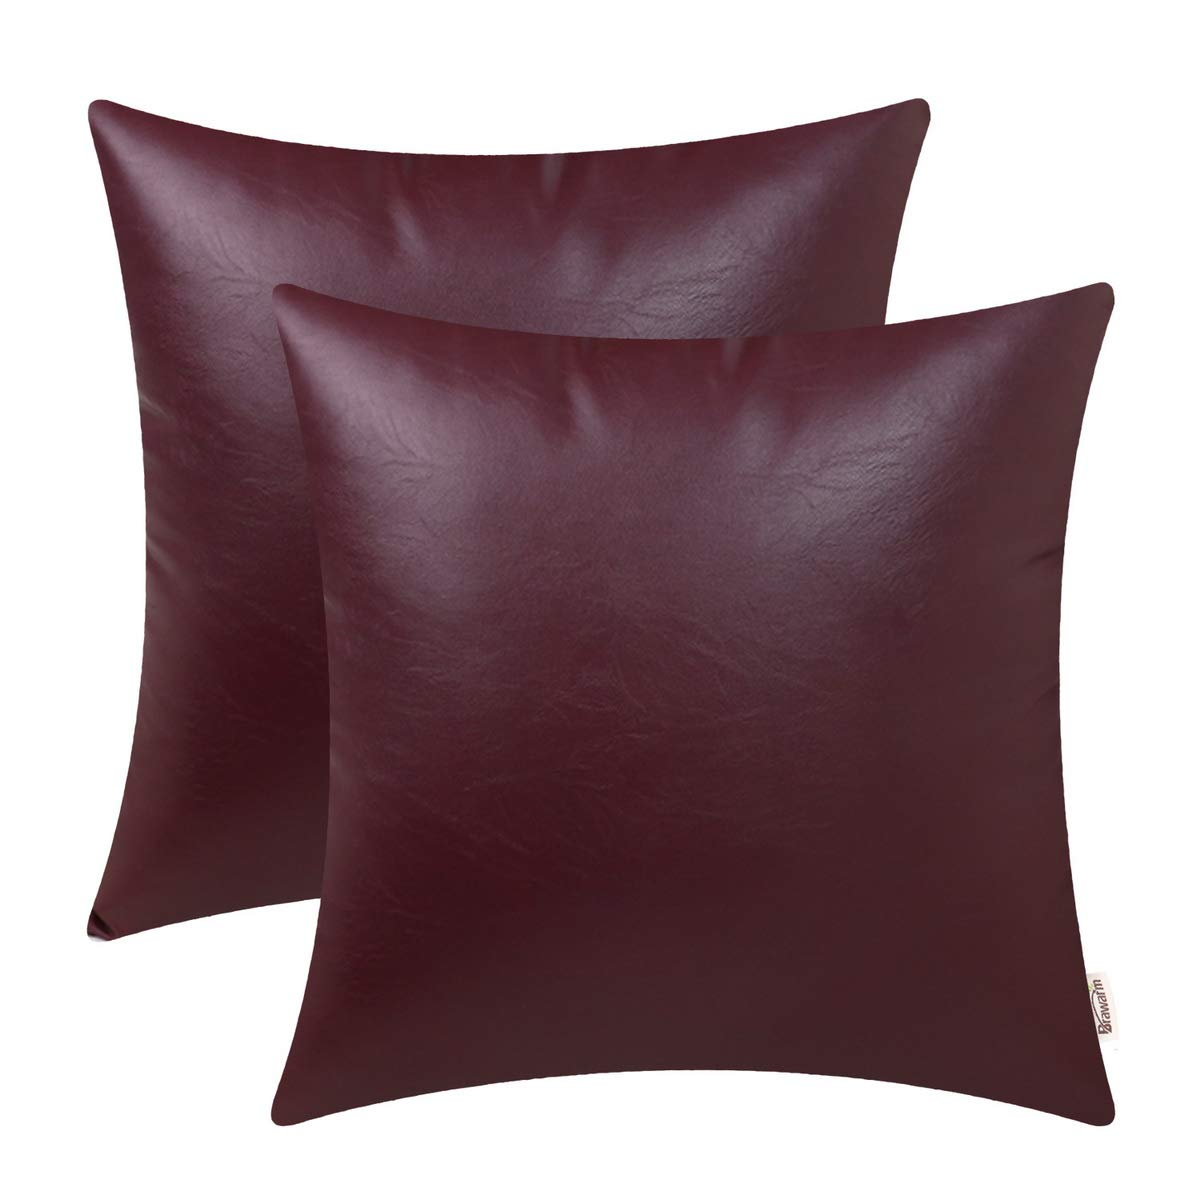 BRAWARM Pack of 2 Cozy Throw Pillow Covers Cases for Couch Sofa Home Decoration Solid Dyed Soft Faux Leather Both Sides 22 X 22 Inches Burgundy